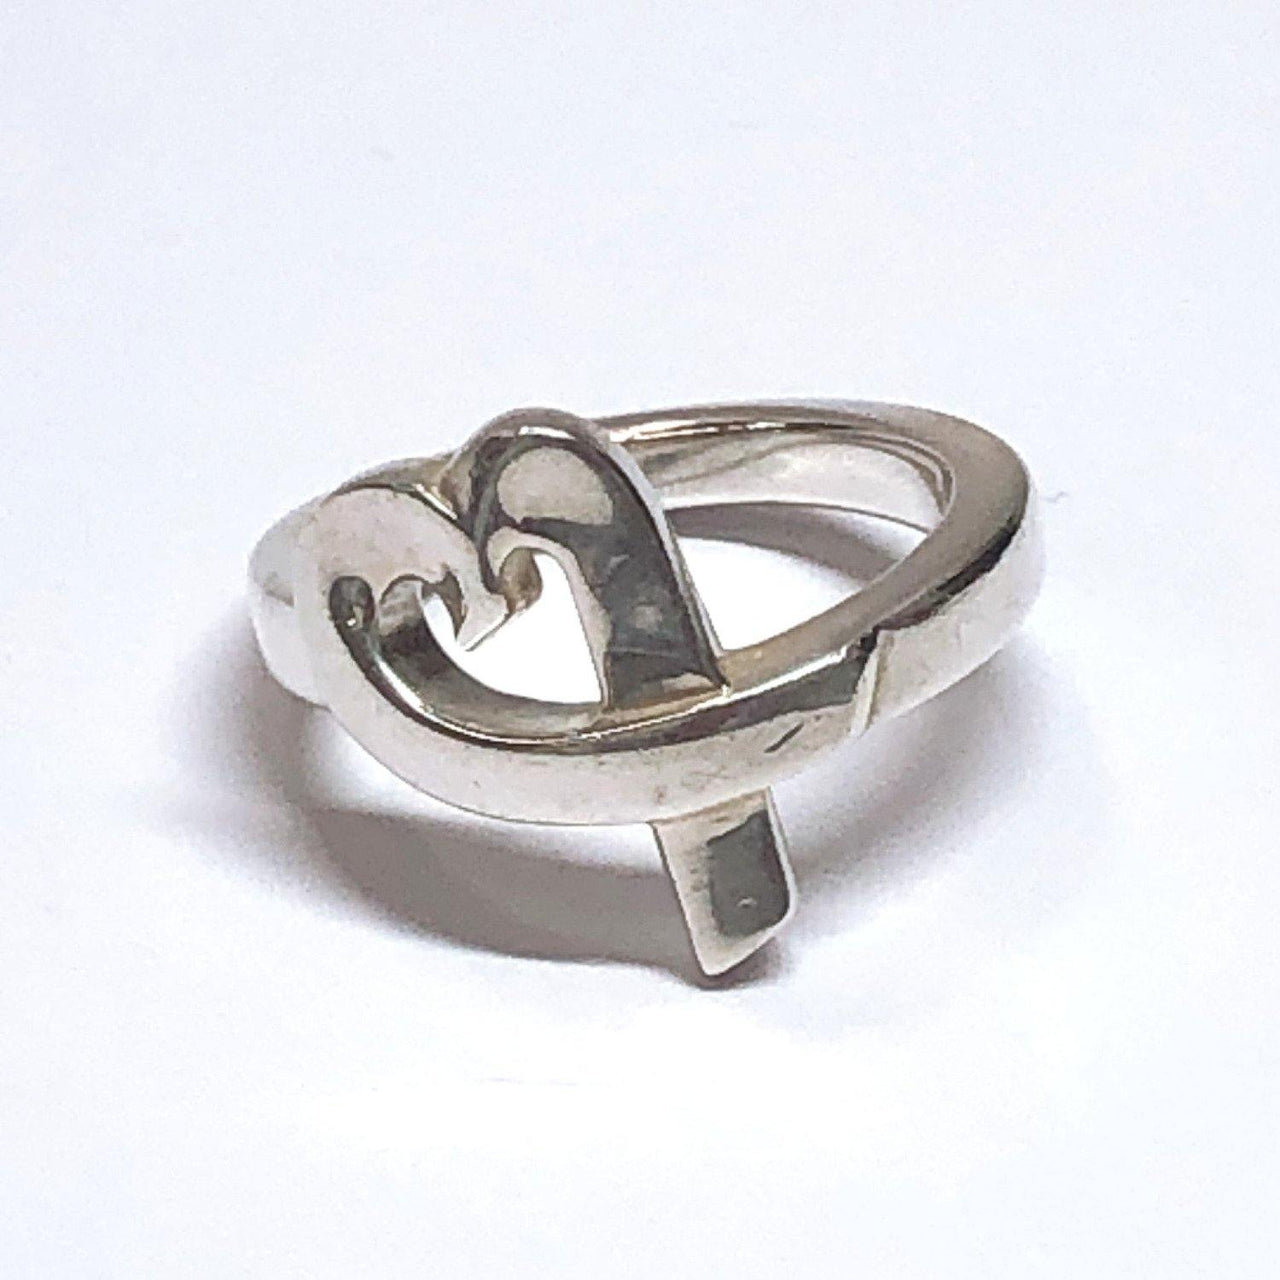 TIFFANY&Co. Ring Paloma Picasso Loving heart Silver925 C Silver Women Used - JP-BRANDS.com